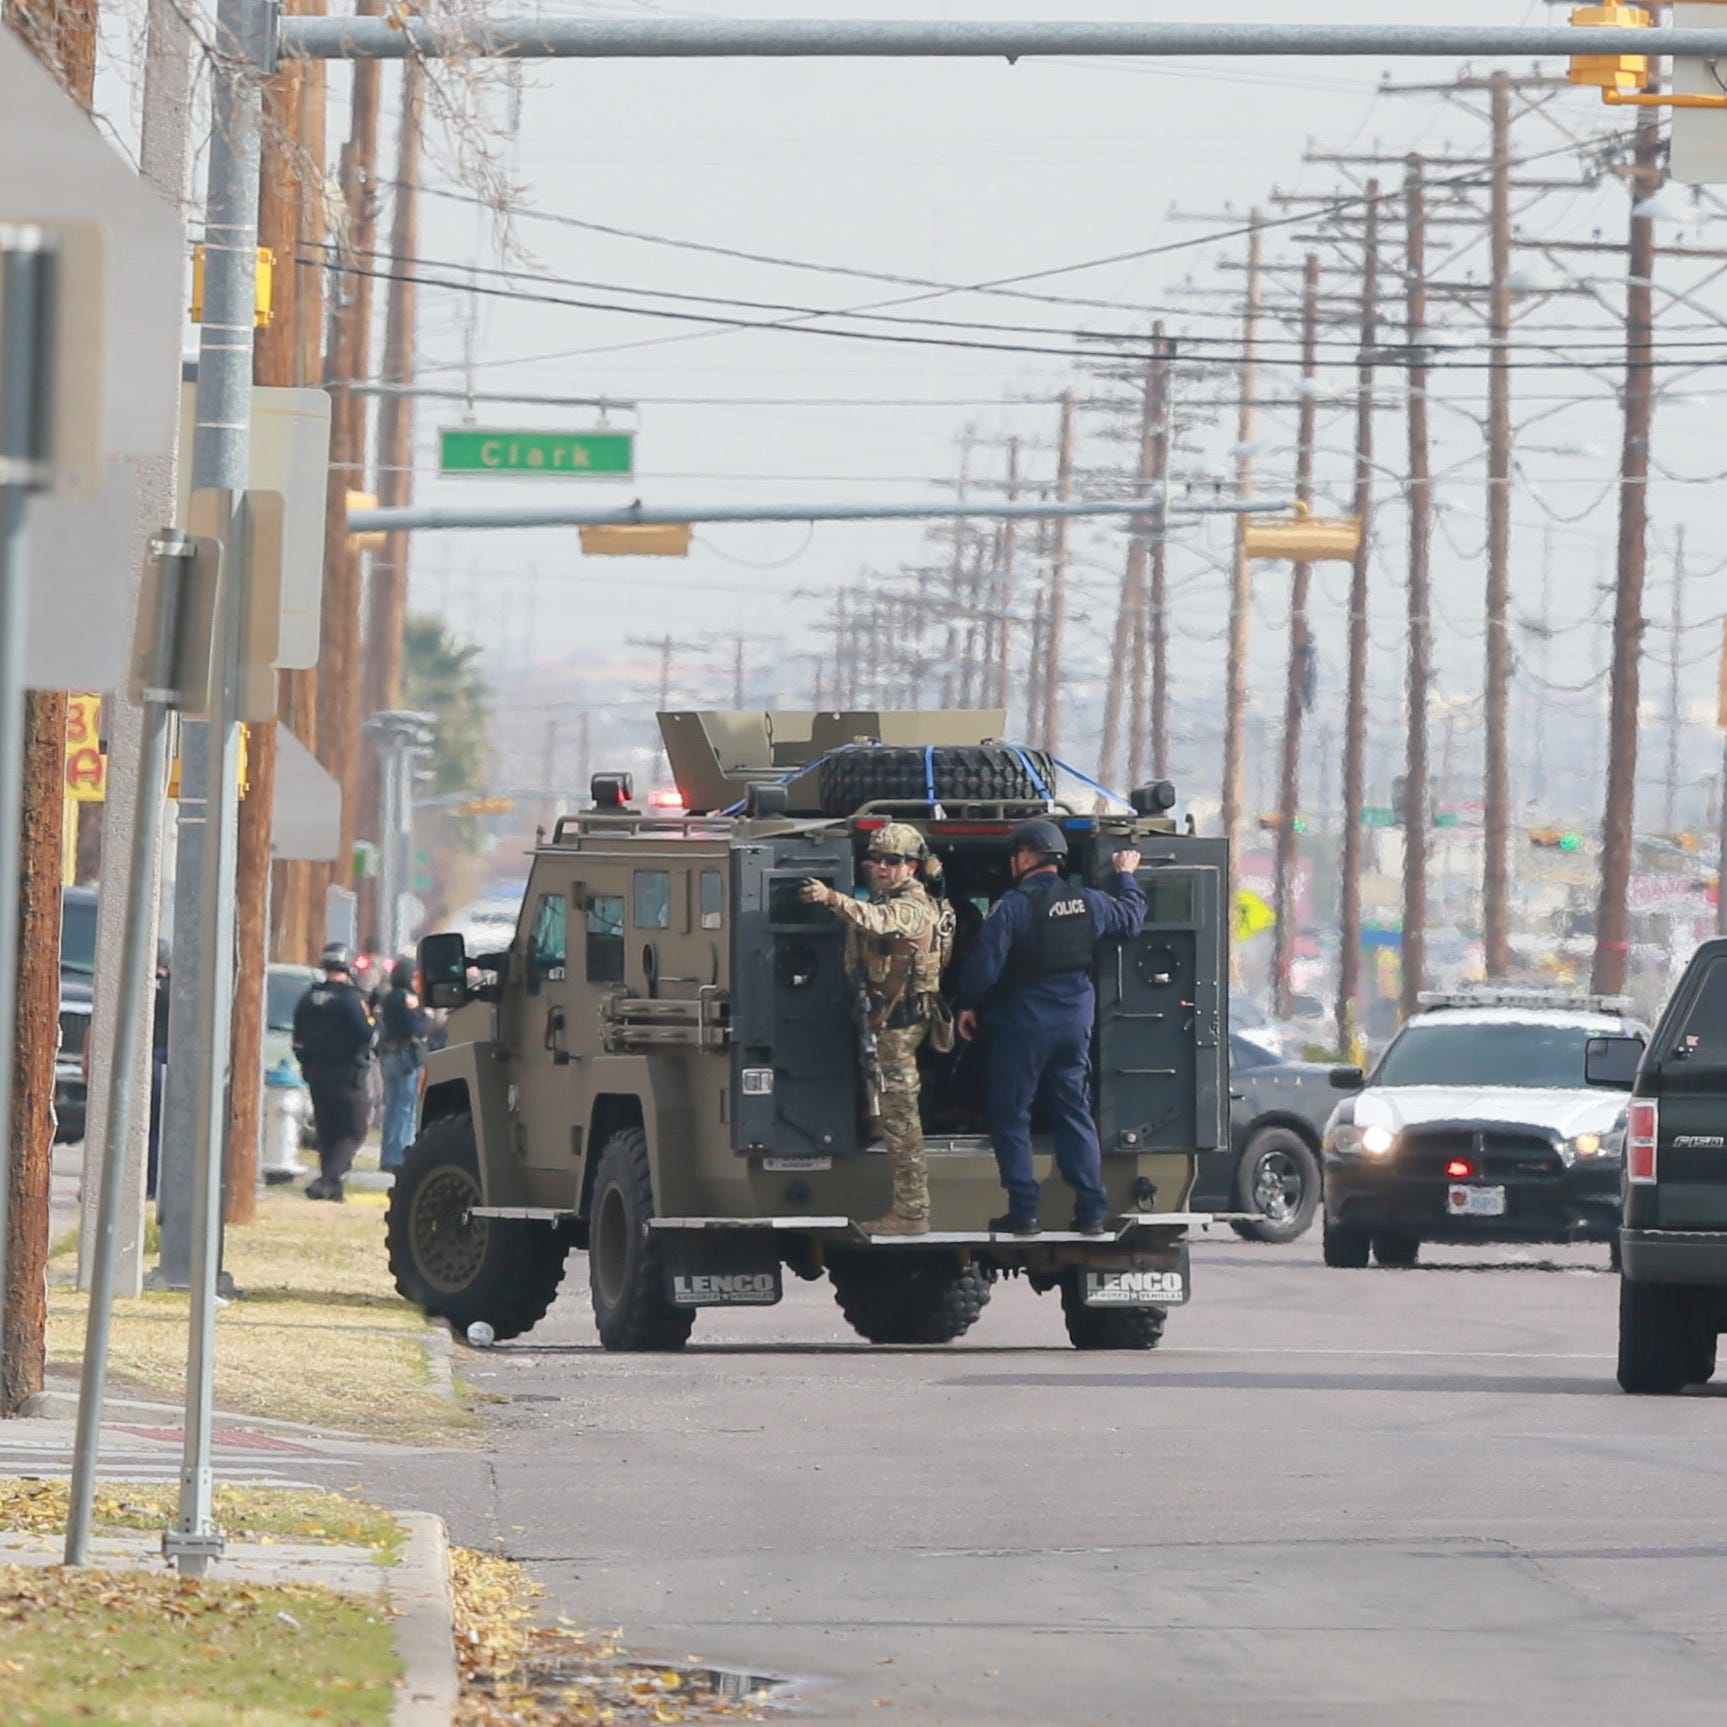 Suspect arrested in South-Central El Paso officer-involved shooting